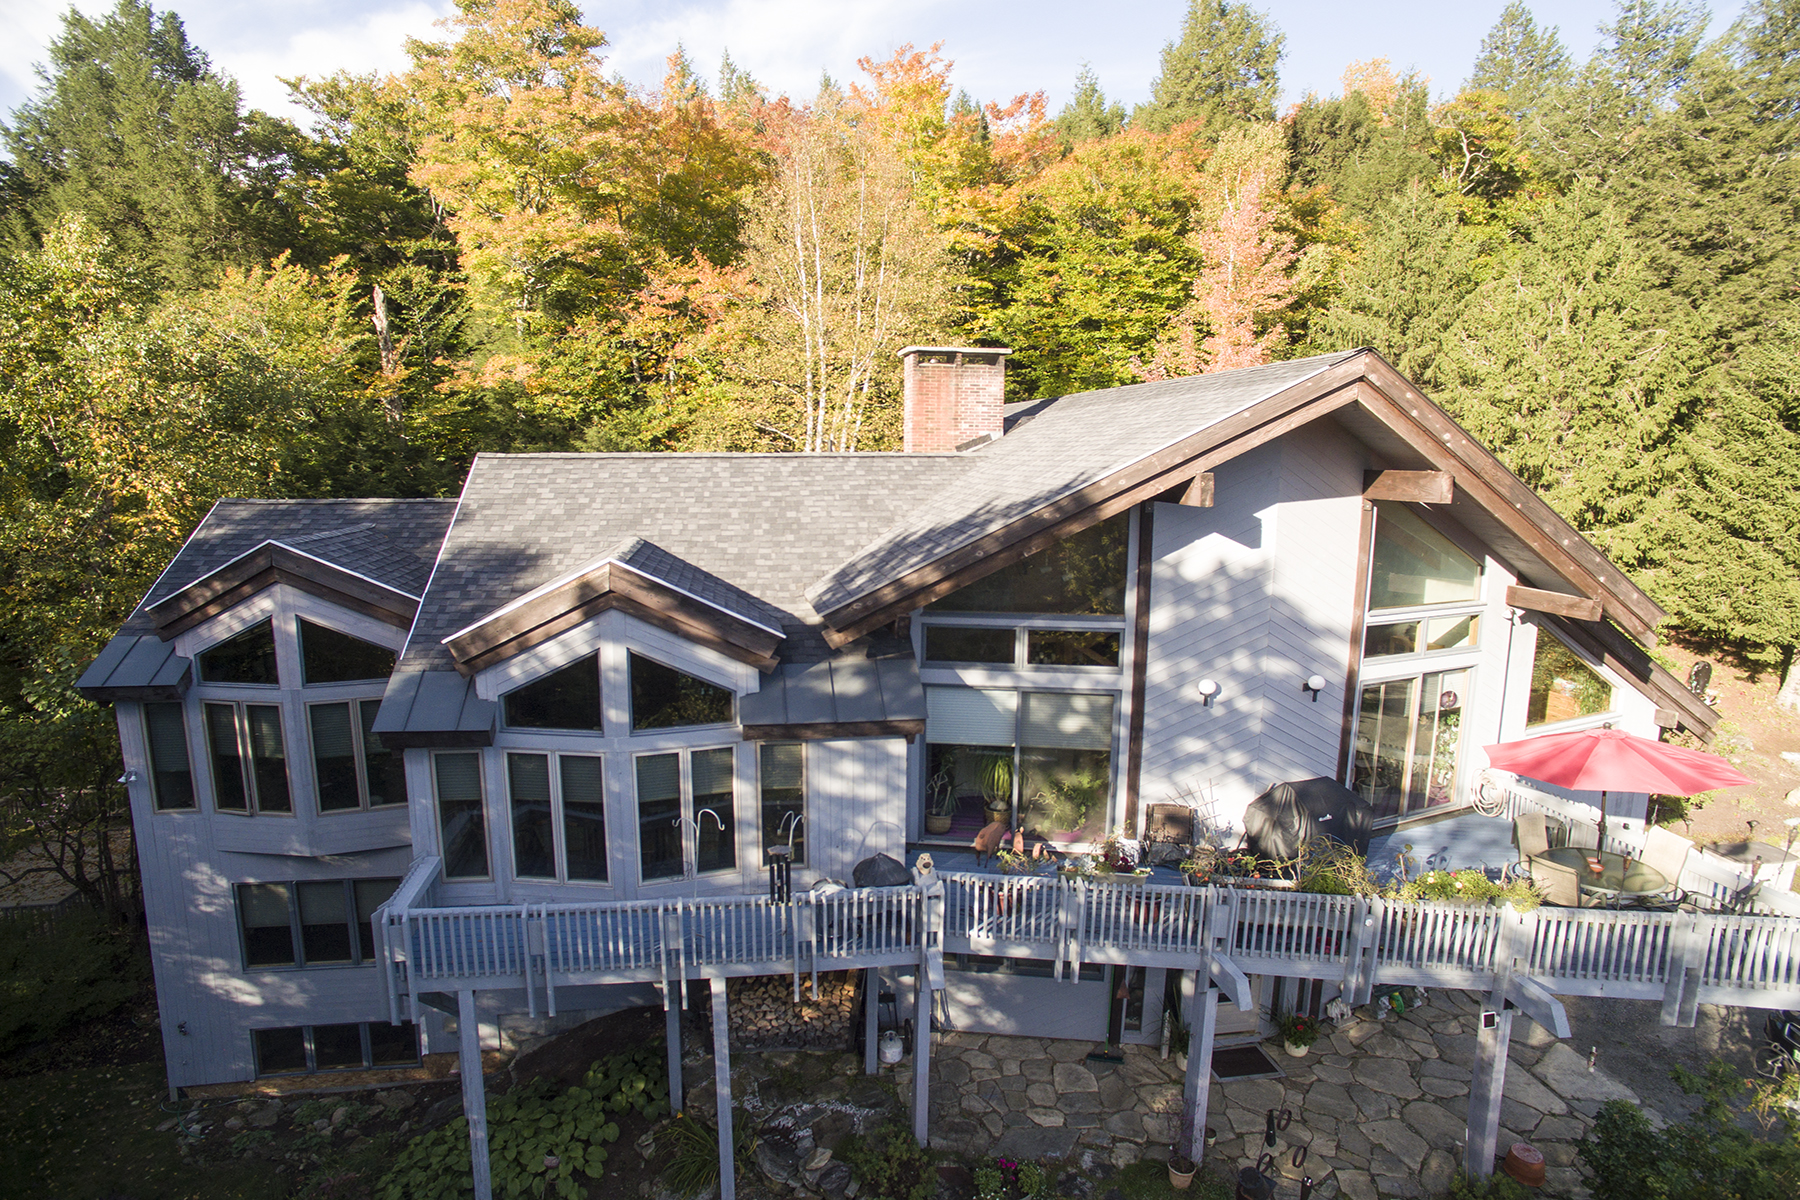 Single Family Home for Sale at 50 Stratton View Road, Winhall 50 Stratton View Rd Winhall, Vermont 05340 United States